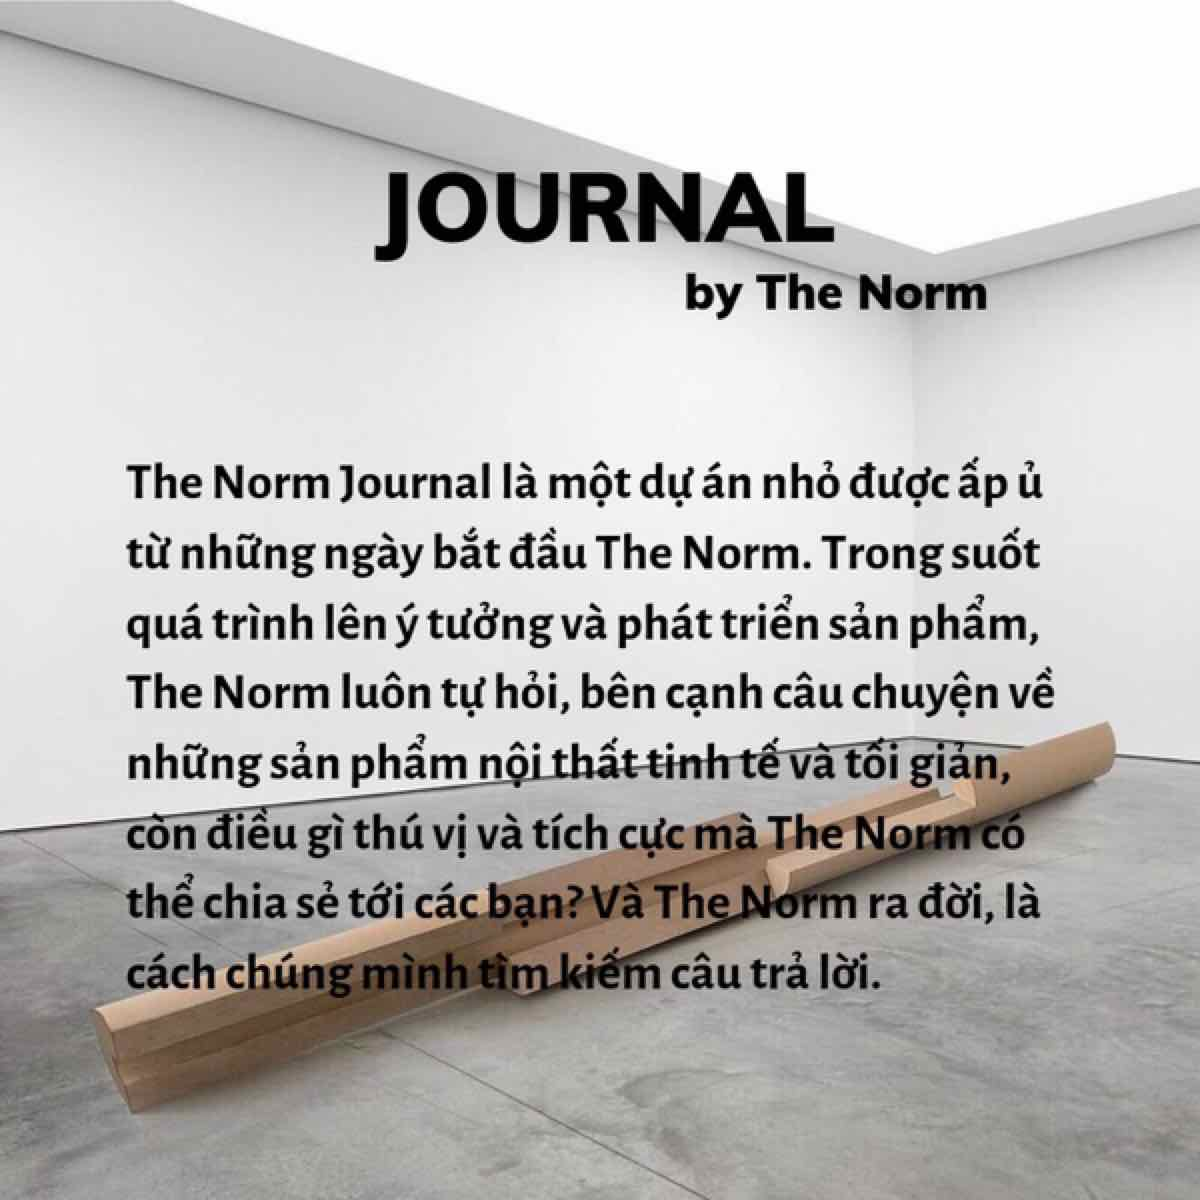 THE NORM JOURNAL